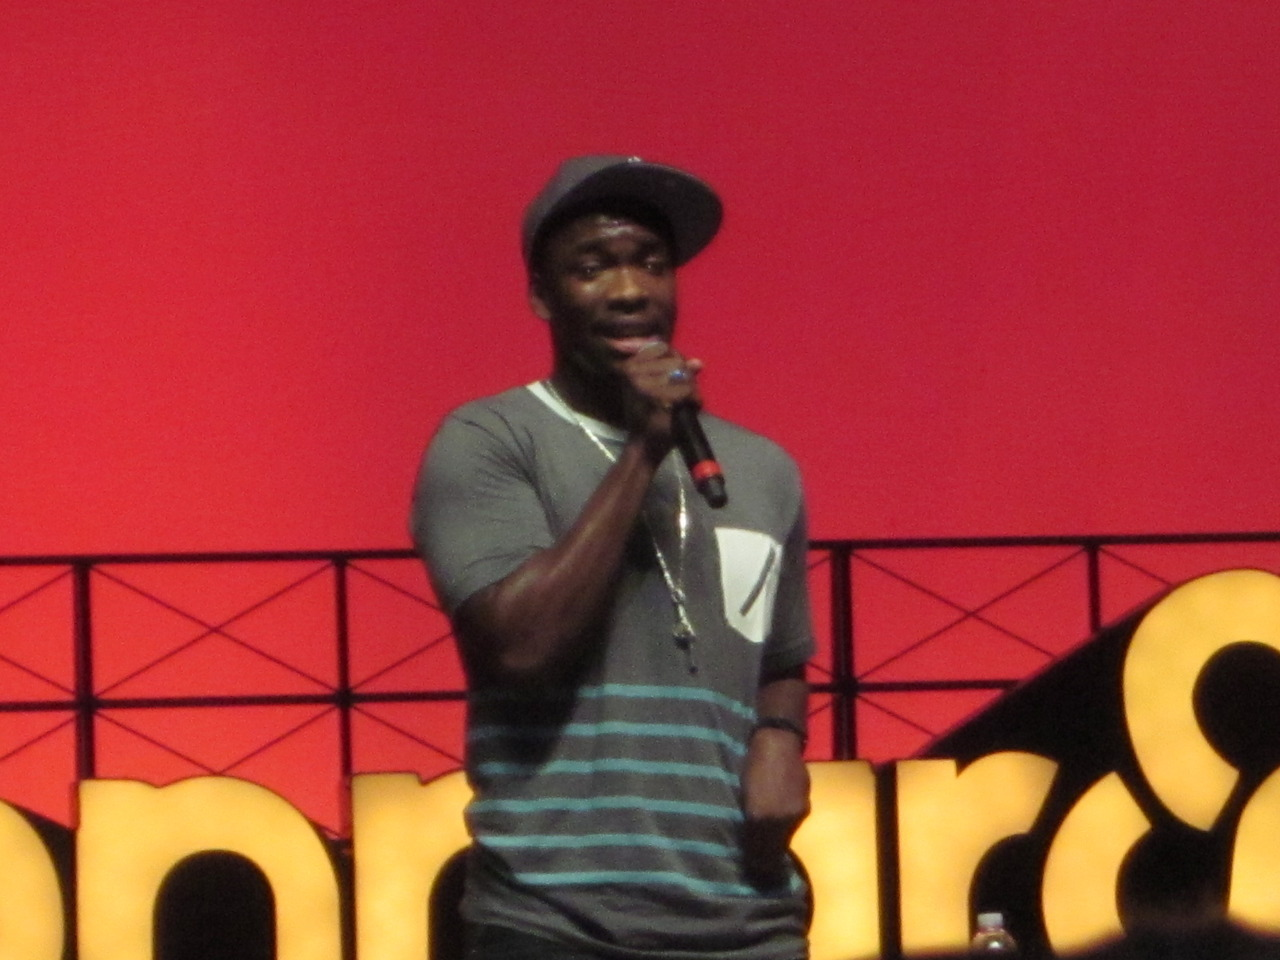 Jay Pharoah at Bonnaroo 2011